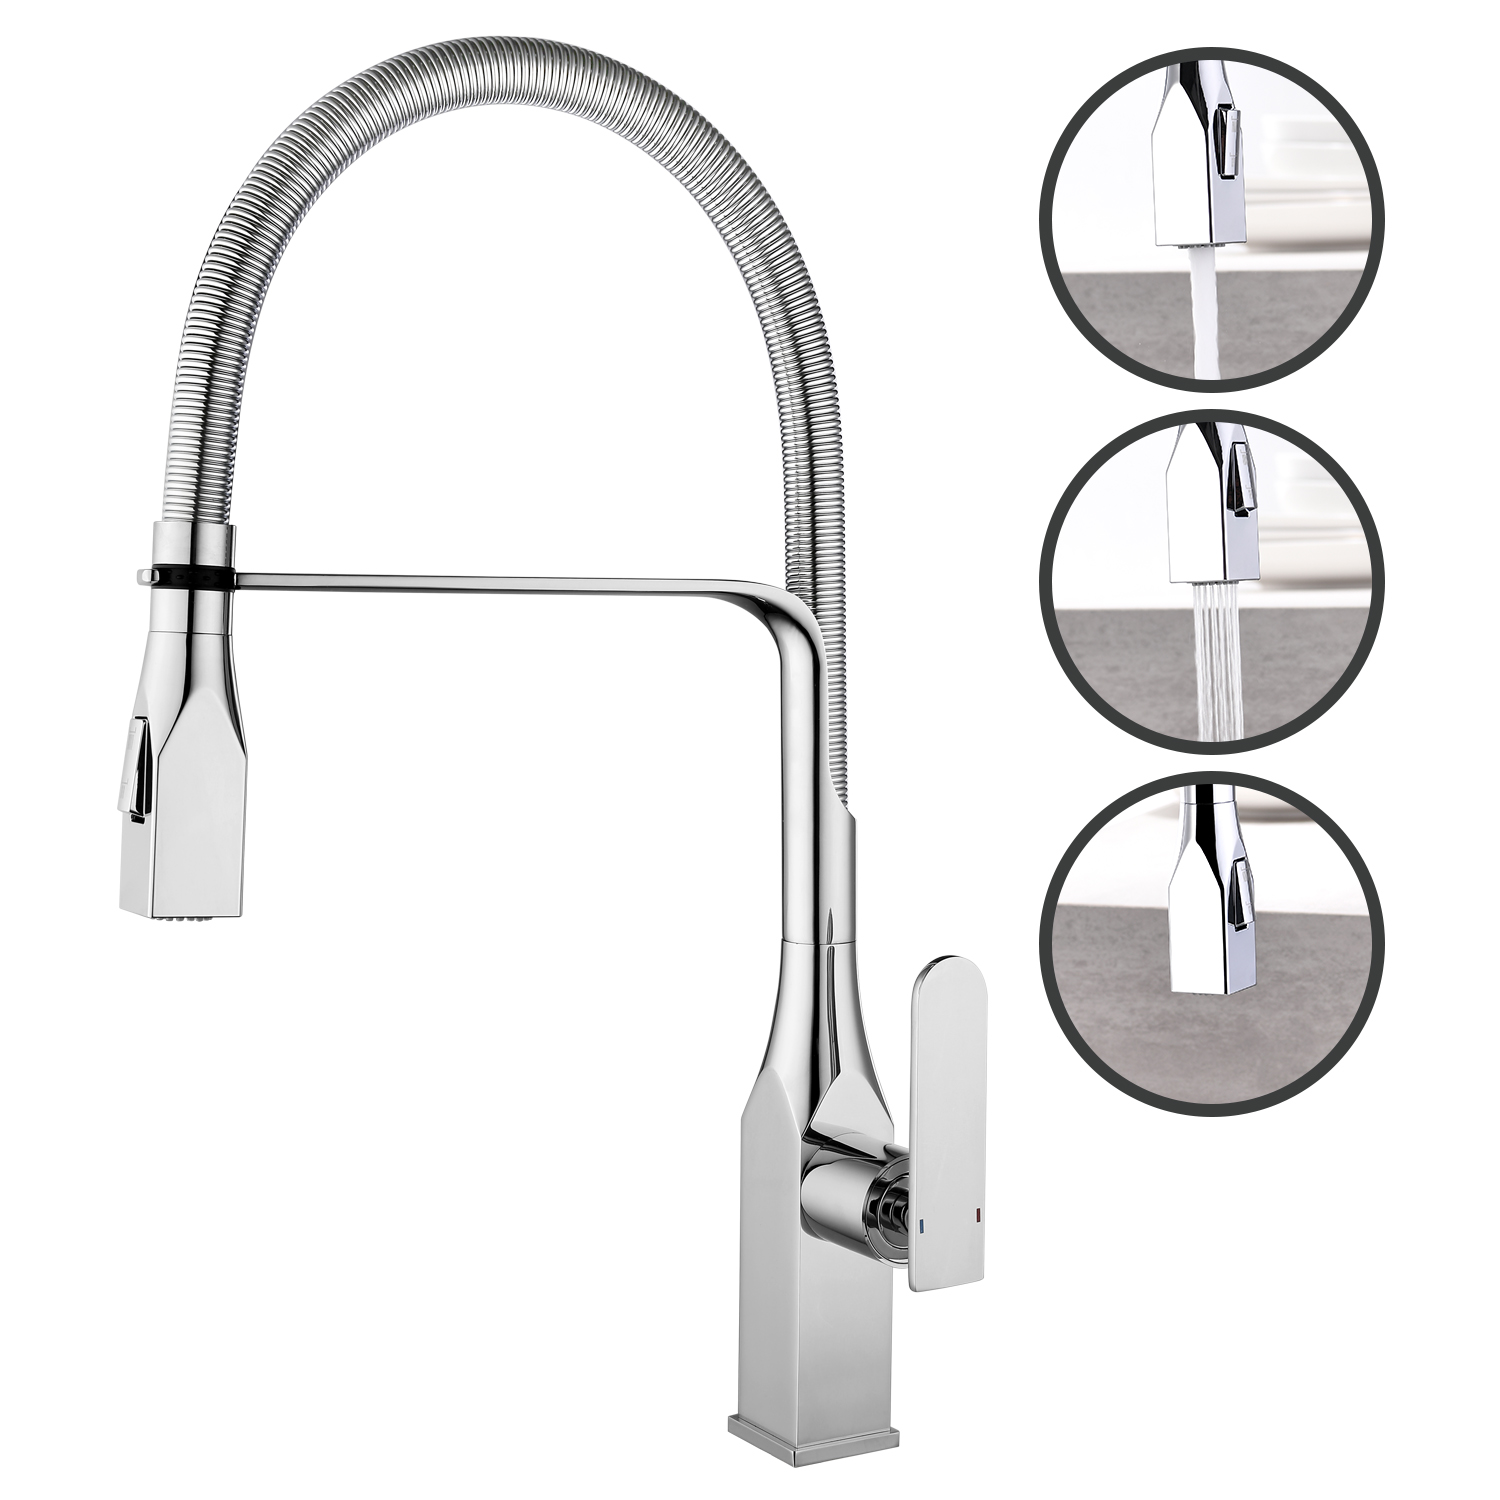 Permalink to Kitchen Faucet Dual Spray Mode Single Handle Bathroom Sink Faucet Ceramic Valve 360 Degree Swivel Basin Faucet Kitchen Water Tap